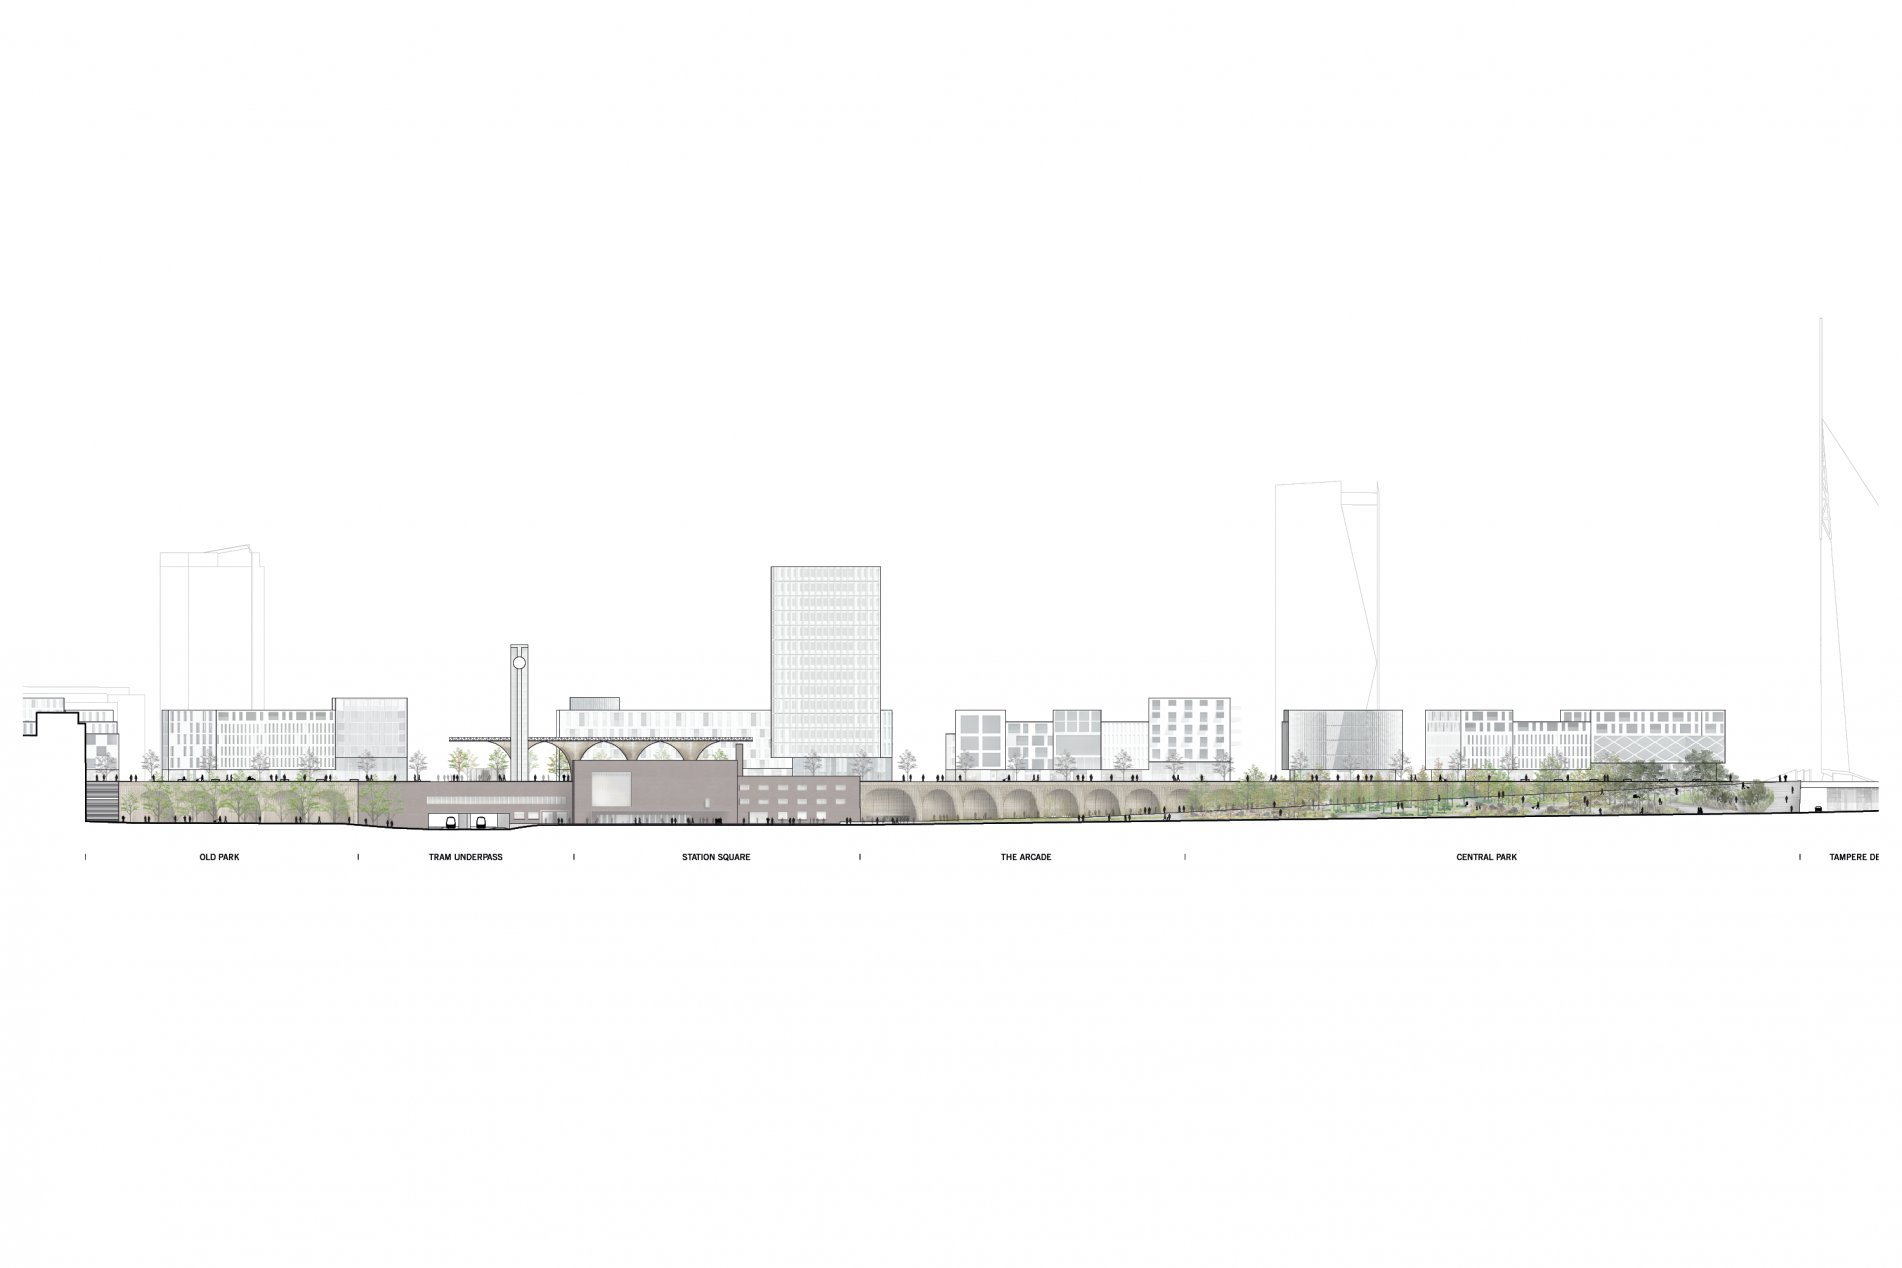 Lunden Architecture Company & COBE_Tampere_Travel_and_Service_Center_site_section1